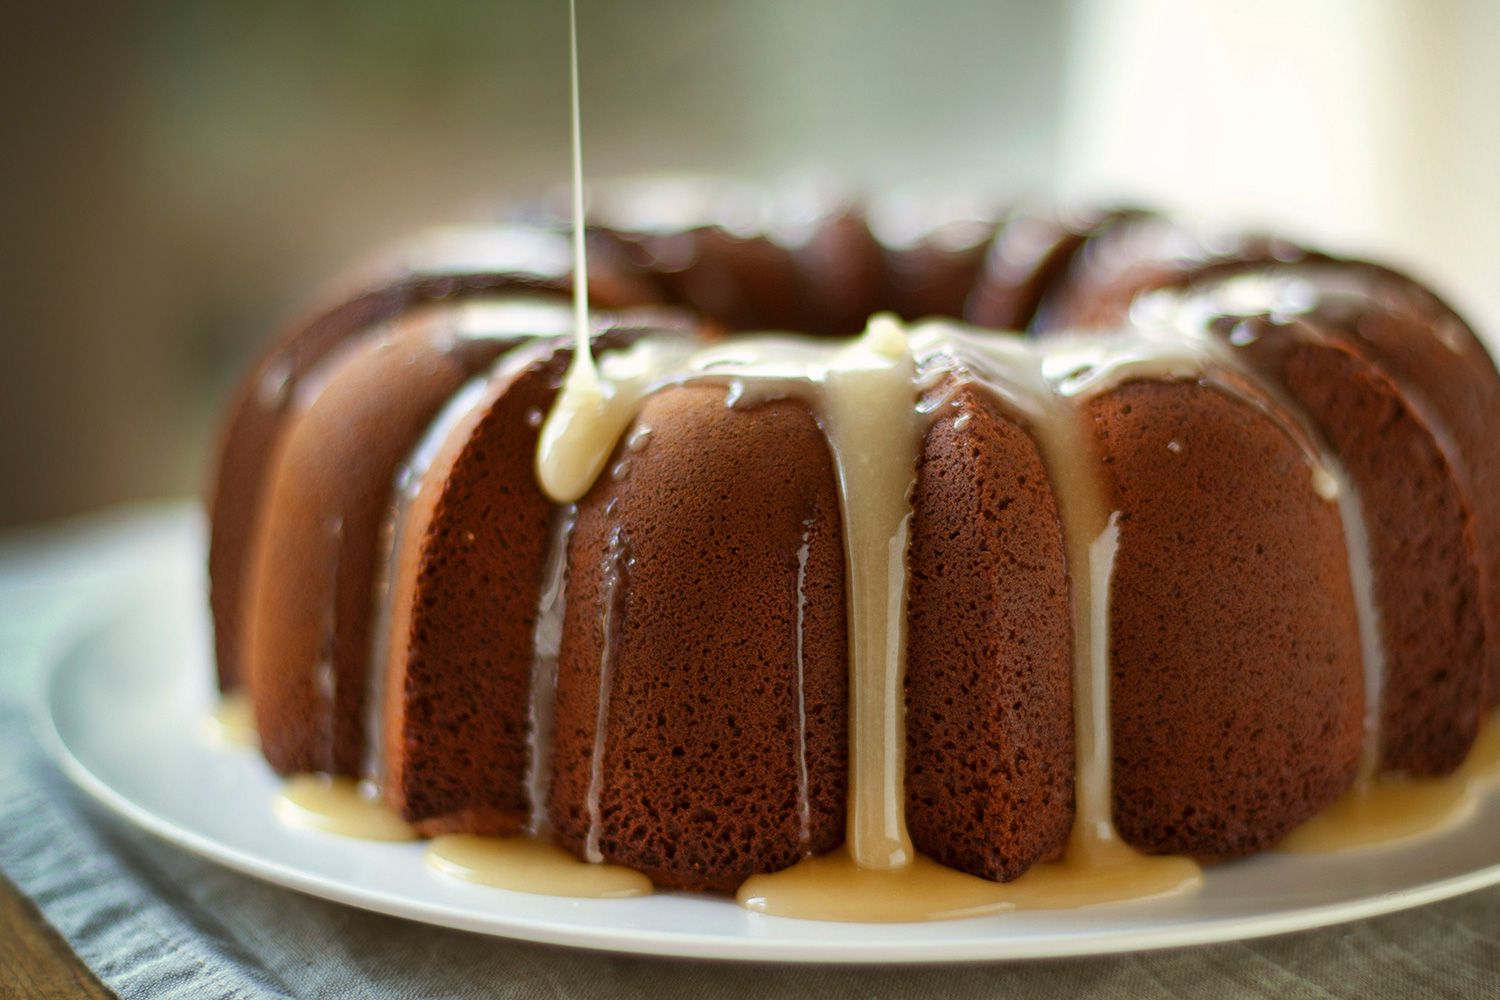 Spanish Cinnamon Bundt Cake Recipe